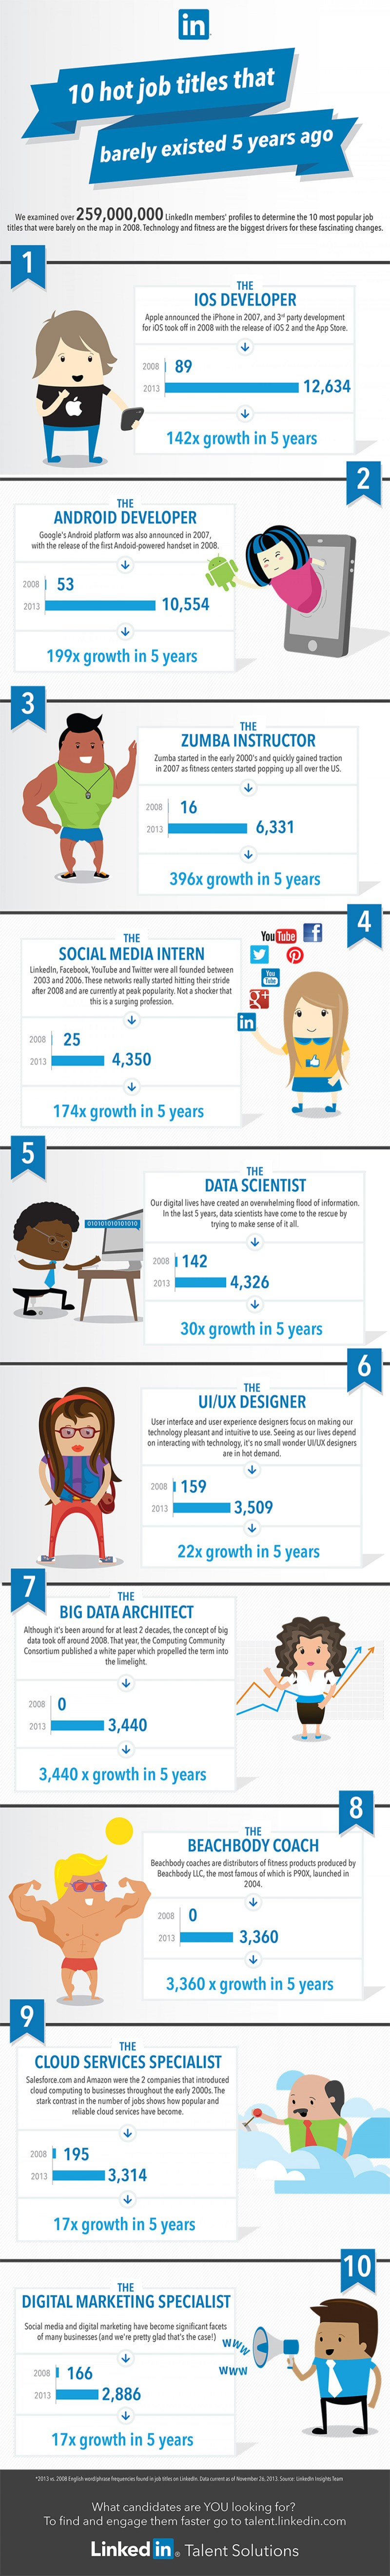 Infographic - 10 Hot Job That Didn't Exist 5 Years Ago